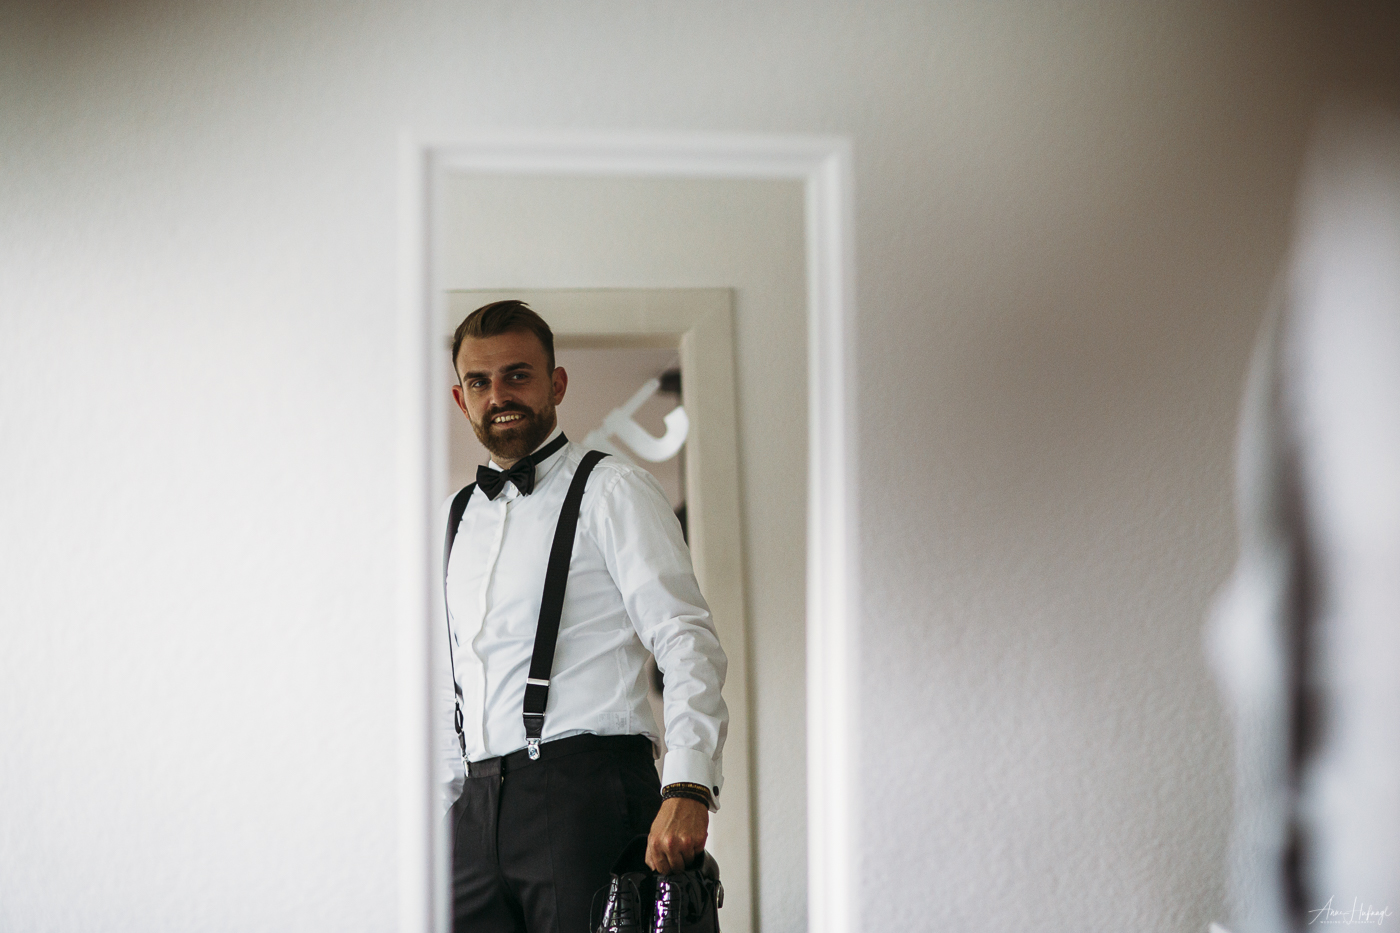 Groom getting ready | Wedding Photographer Anne Hufnagl from Hamburg, Germany | Contact: anne@romanticshoots.de